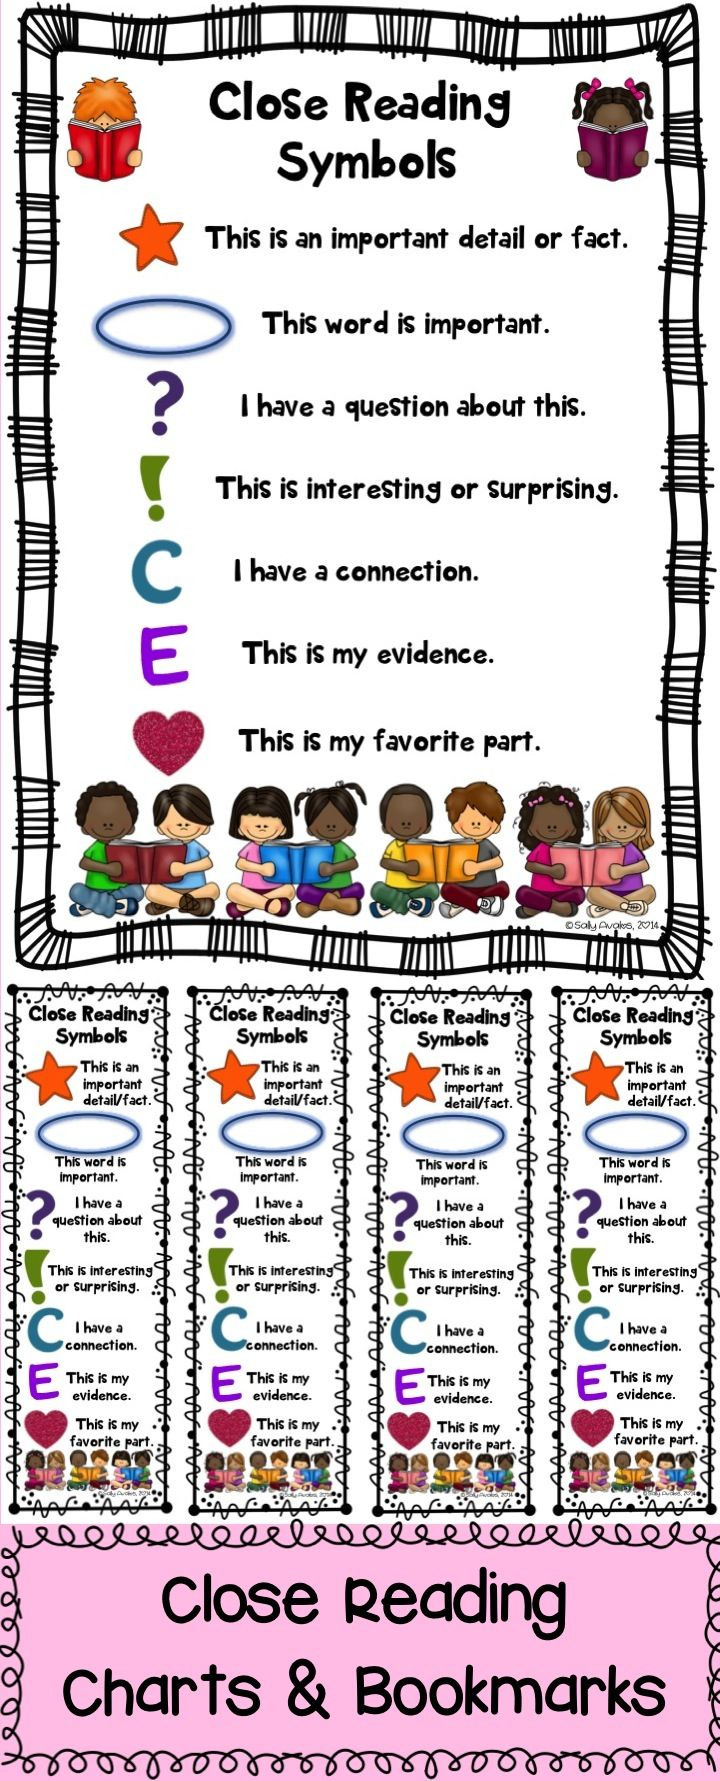 Close Reading Symbols Posters & Bookmarks, Any Topic, First Week Of School